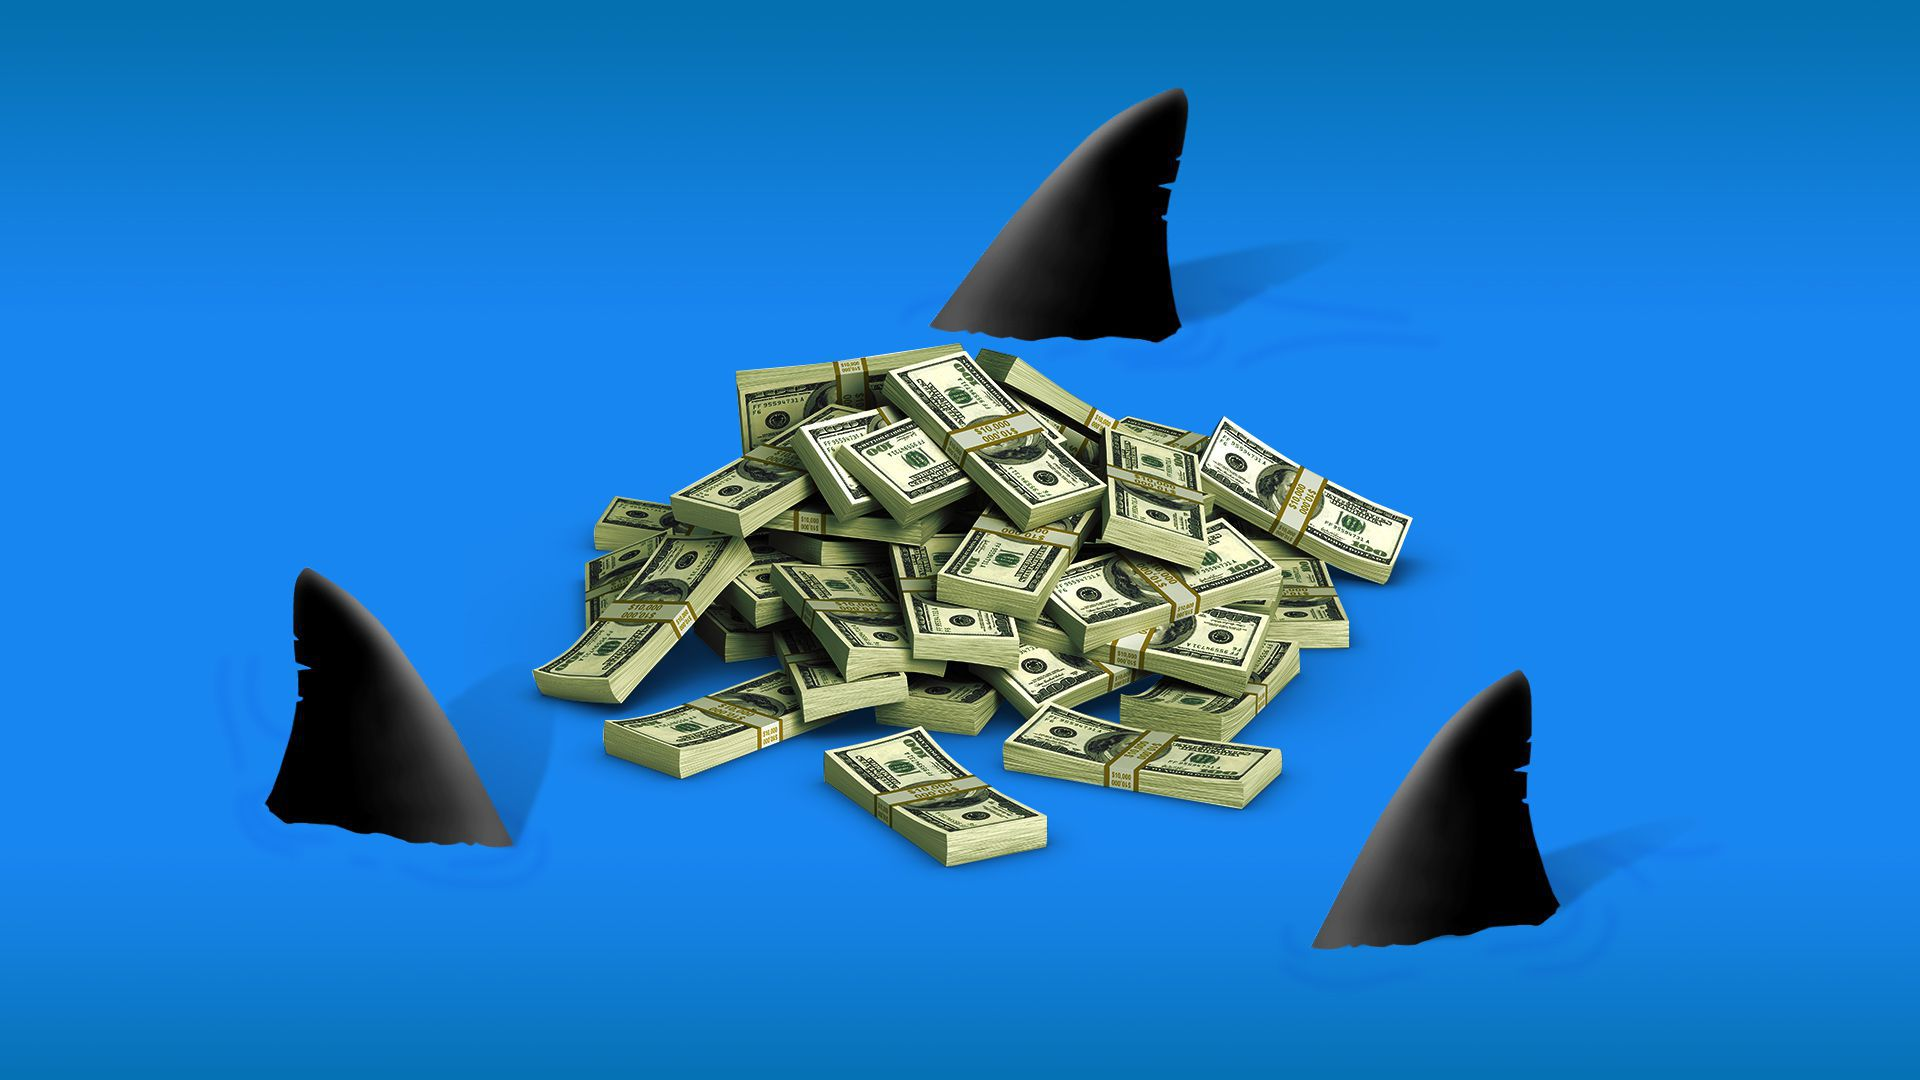 Illustration of sharks circling a pile of money.